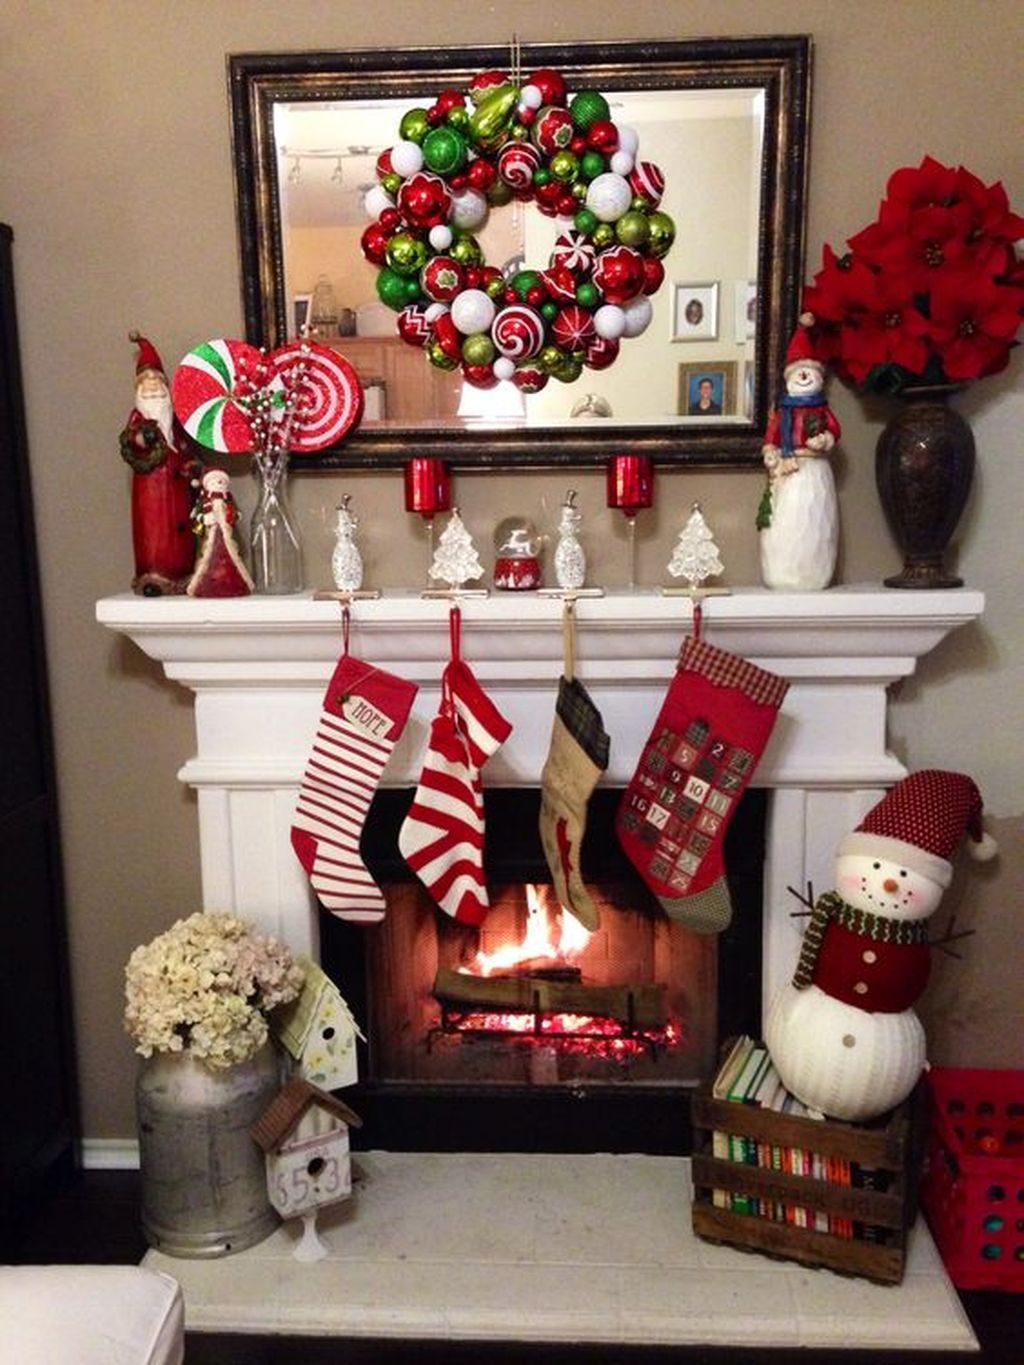 The Best Christmas Fireplace Decoration For Any Home Model 31